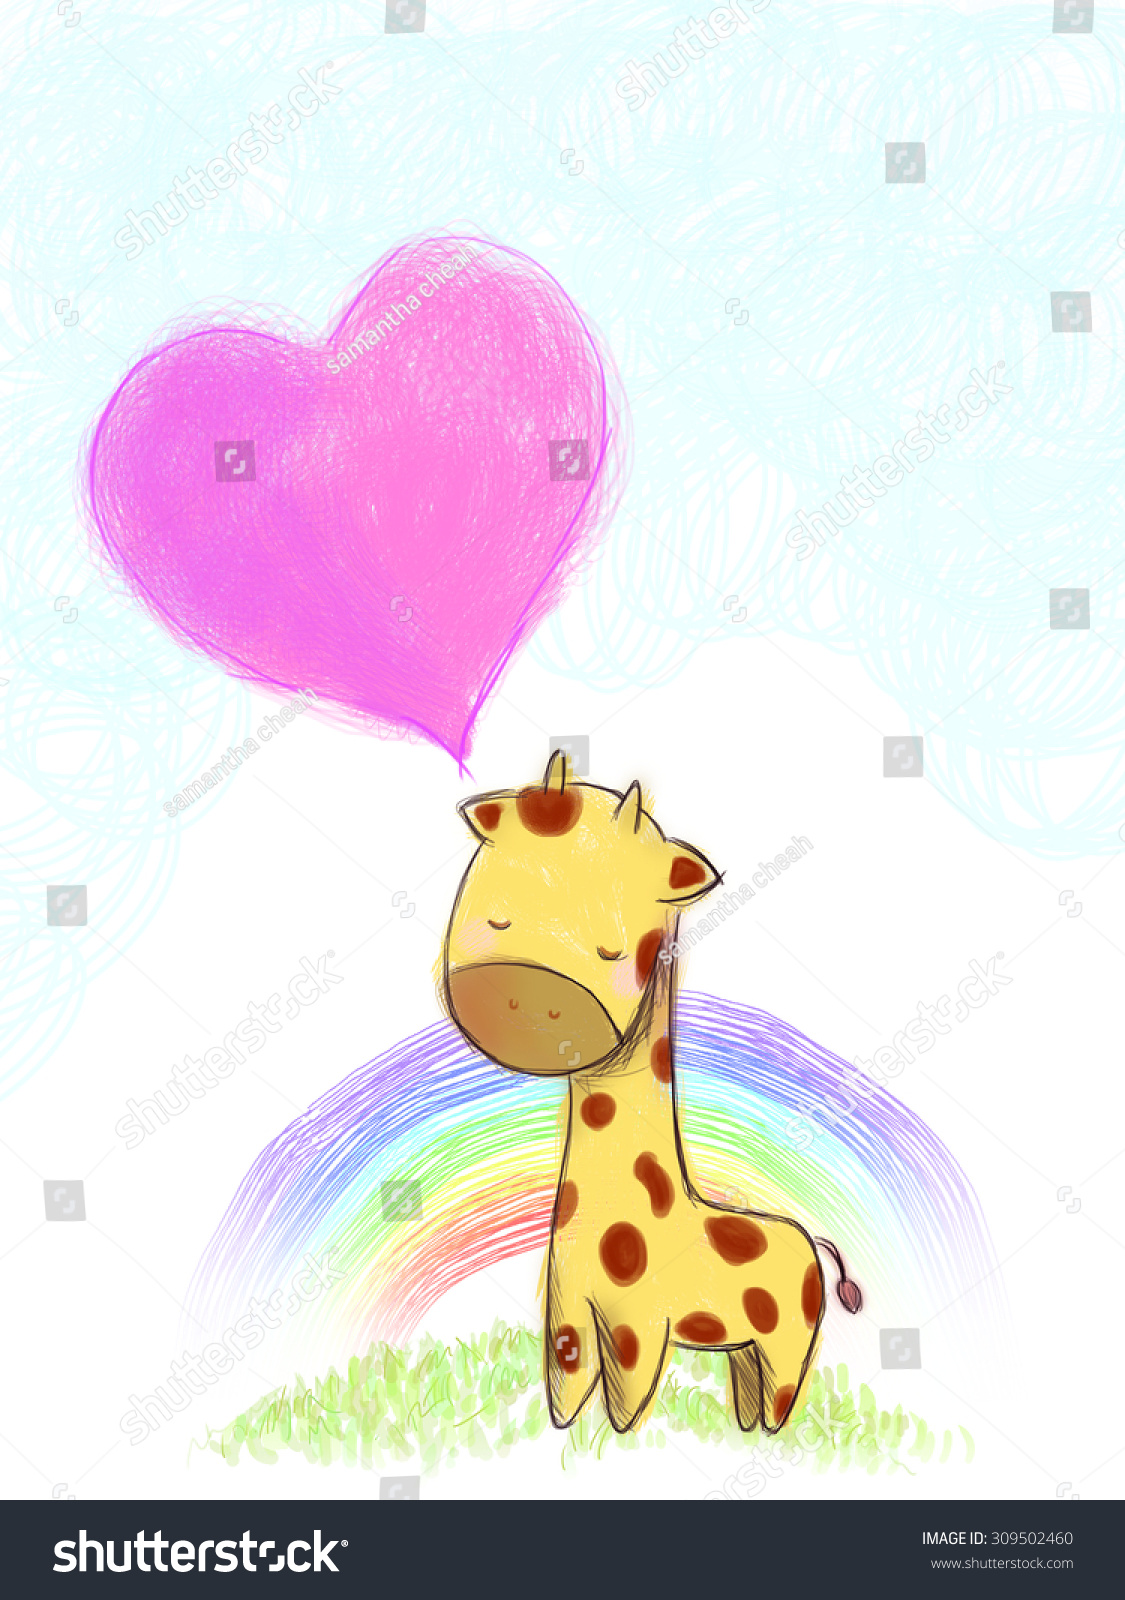 Download Wallpaper Colorful Giraffe - stock-photo-hand-drawn-cartoon-giraffe-with-pink-heart-shape-talking-balloon-on-grass-lawn-hilltop-over-blue-309502460  Picture_771192 .jpg